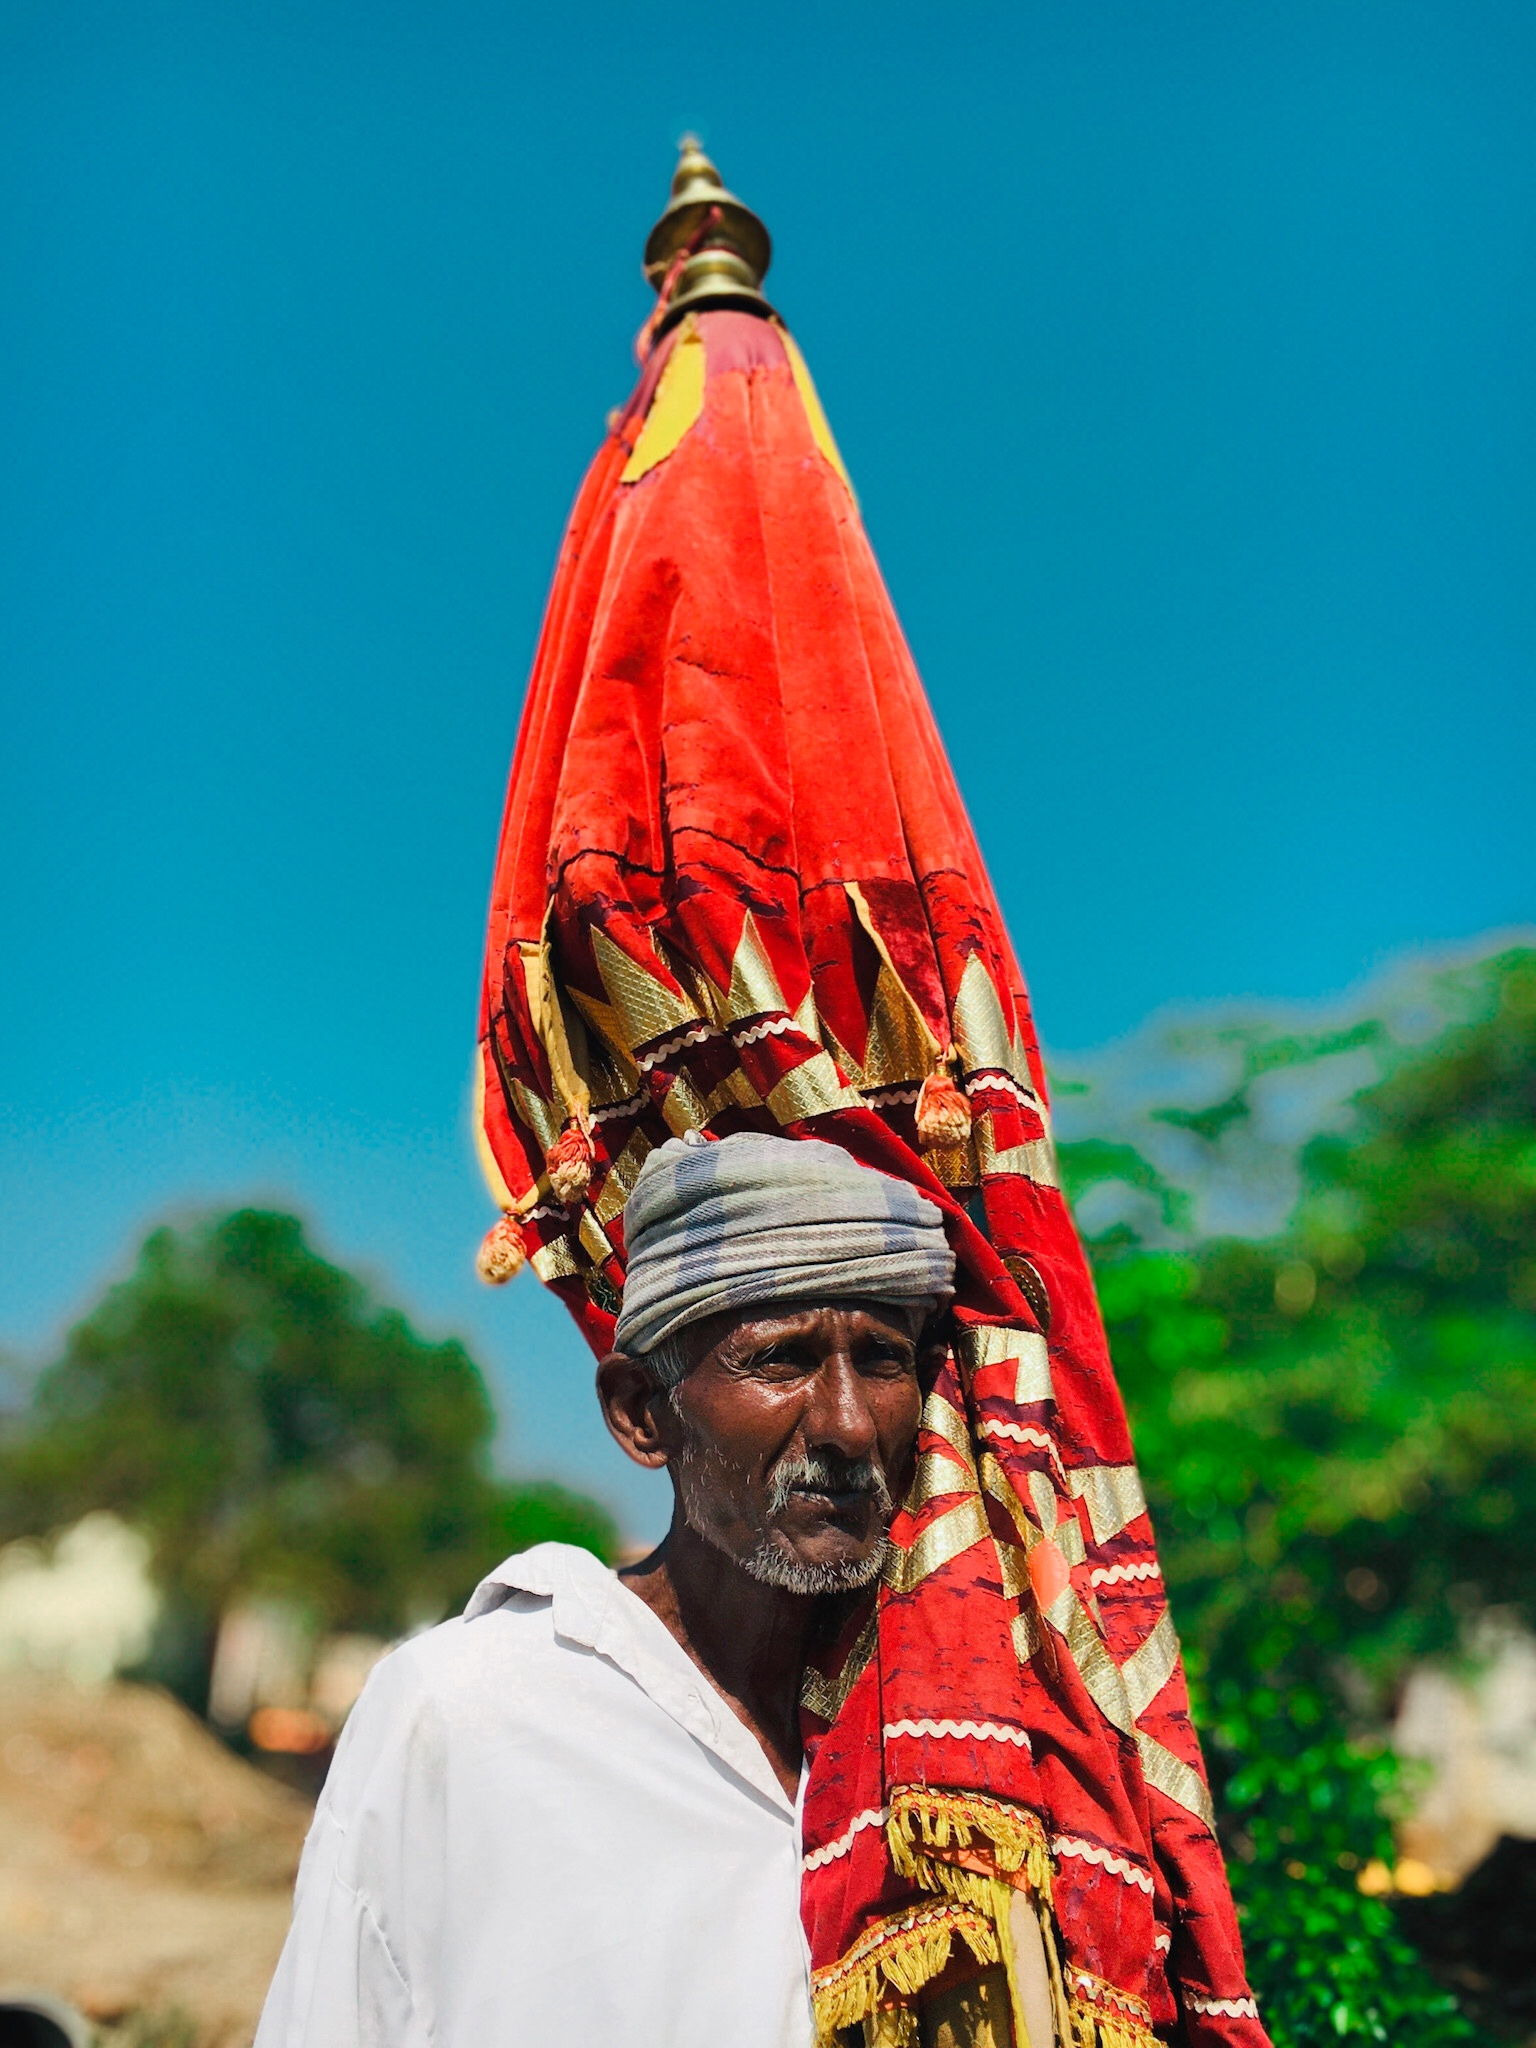 An old man carrying a sacred flag